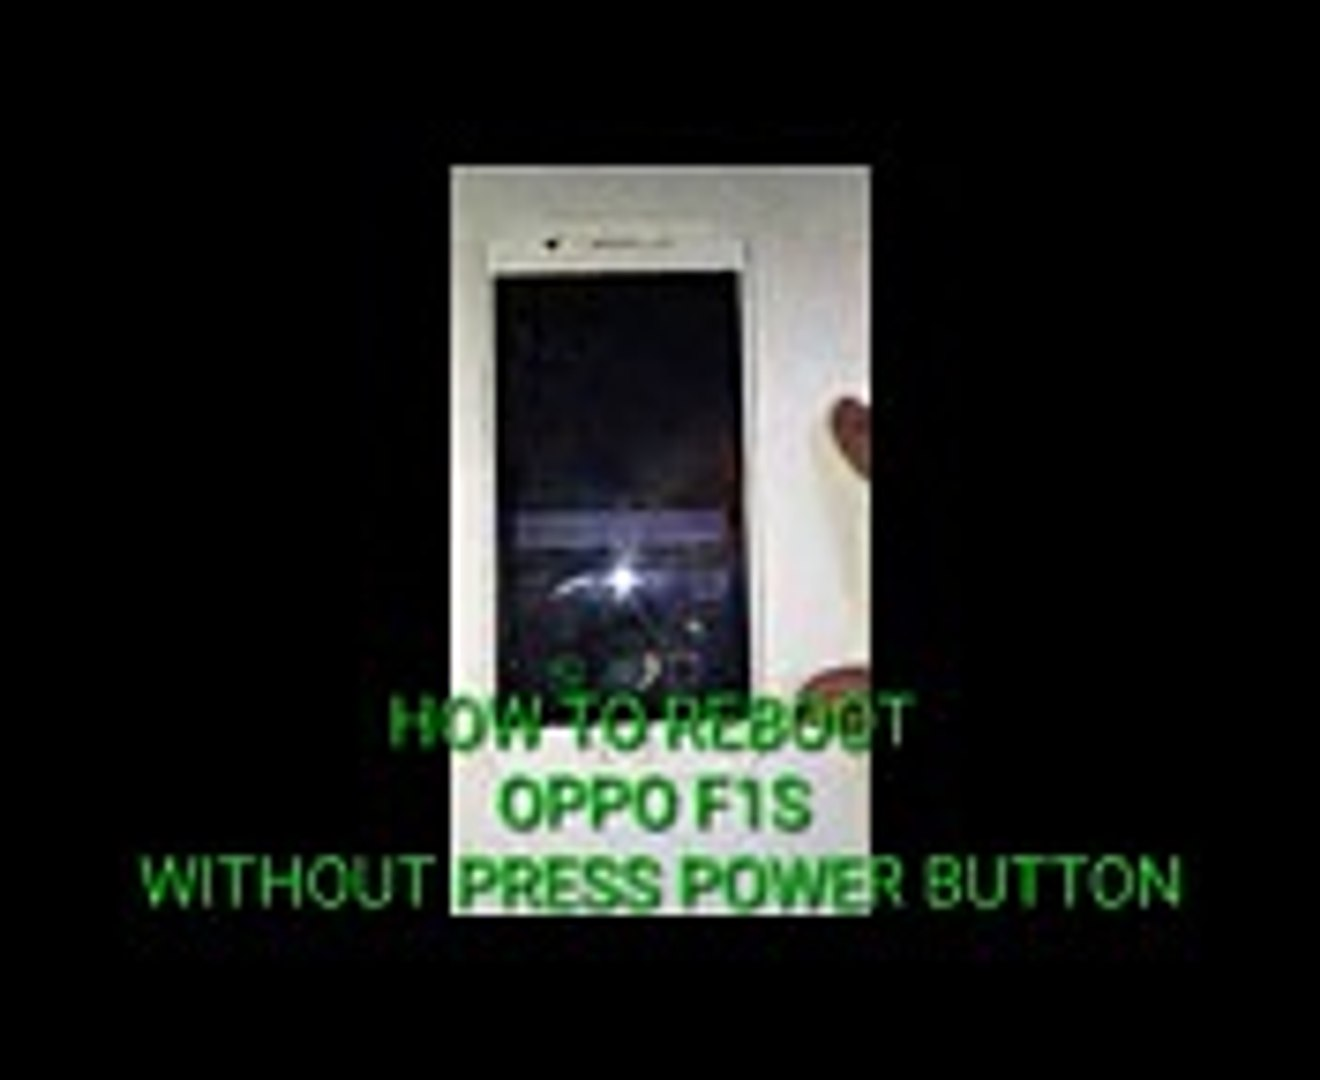 HOW TO RESTART OPPO PHONE WITHOUT USING POWER BUTTON